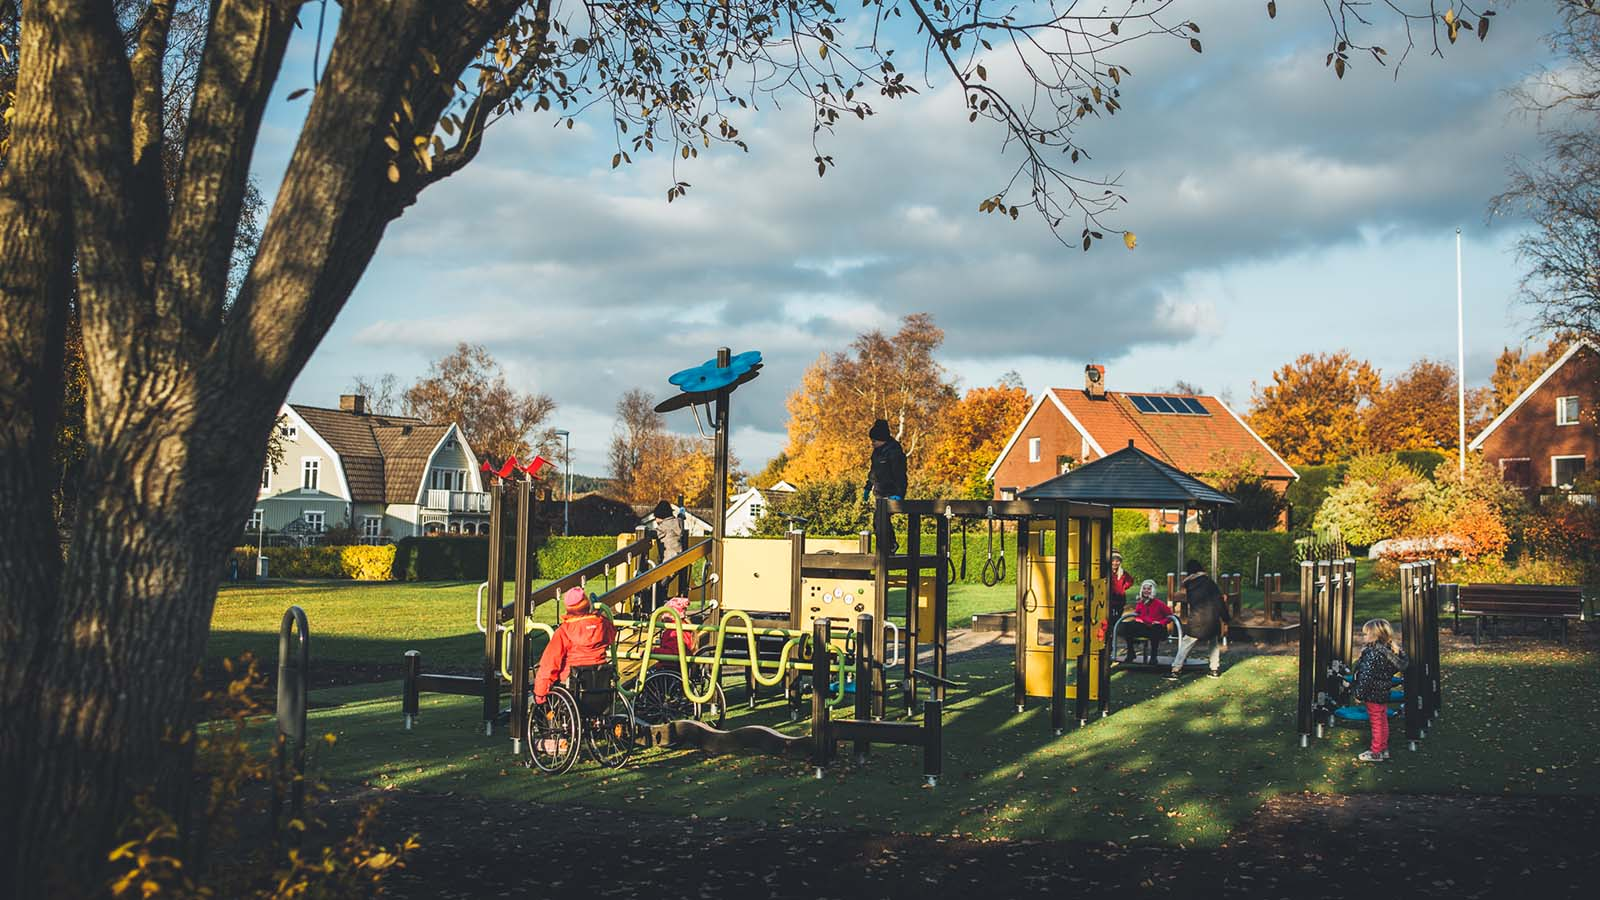 A Public Park That Meets The Diverse Needs Of Users